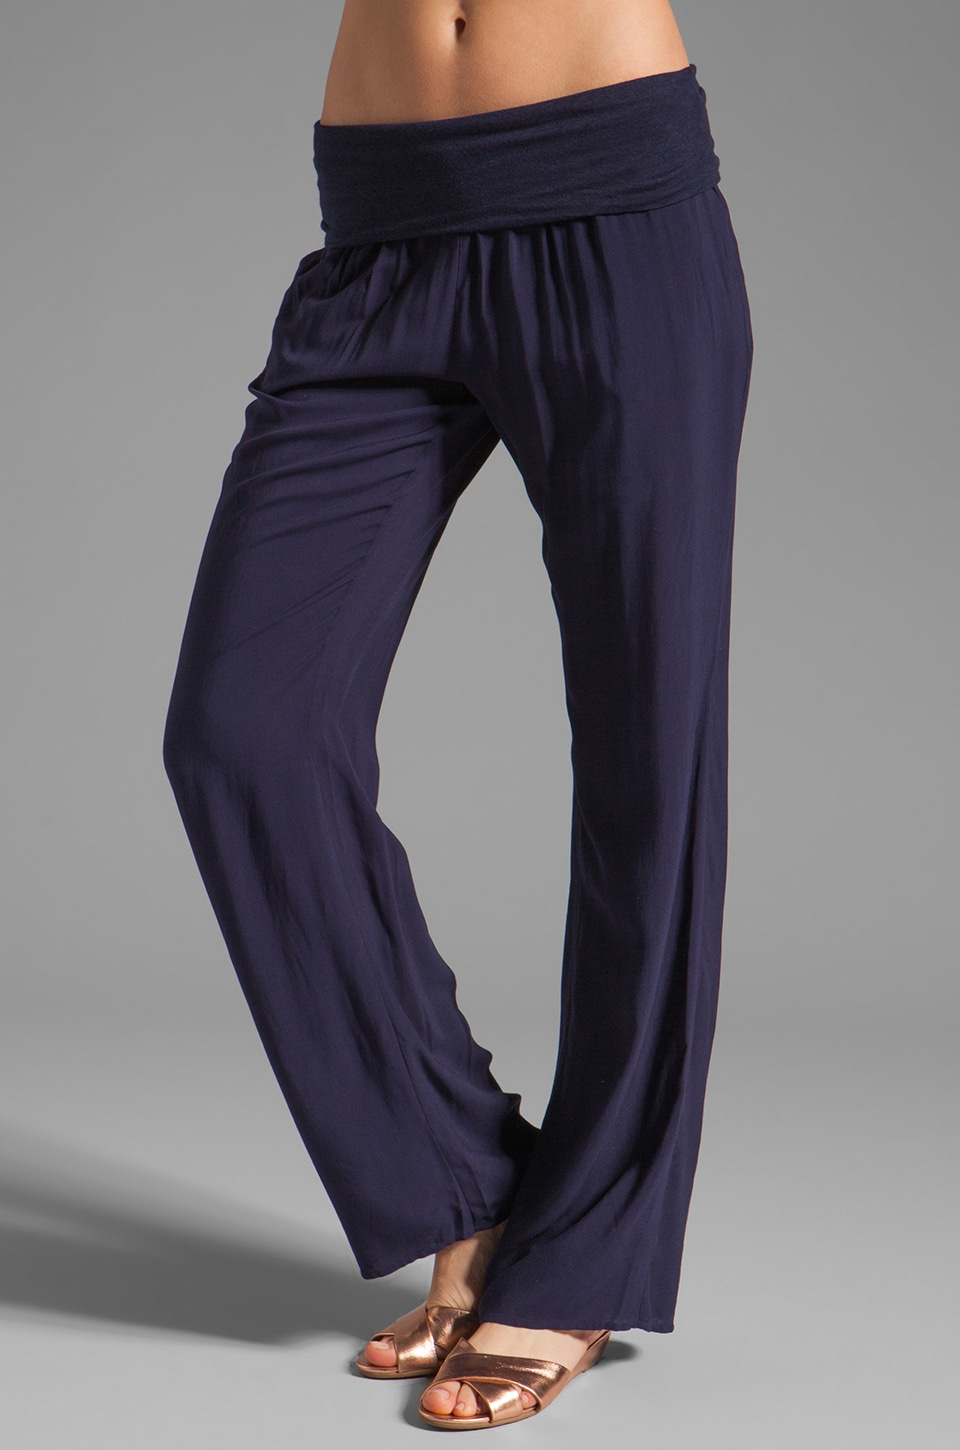 Soft Joie Pia Linen Pant in Peacoat